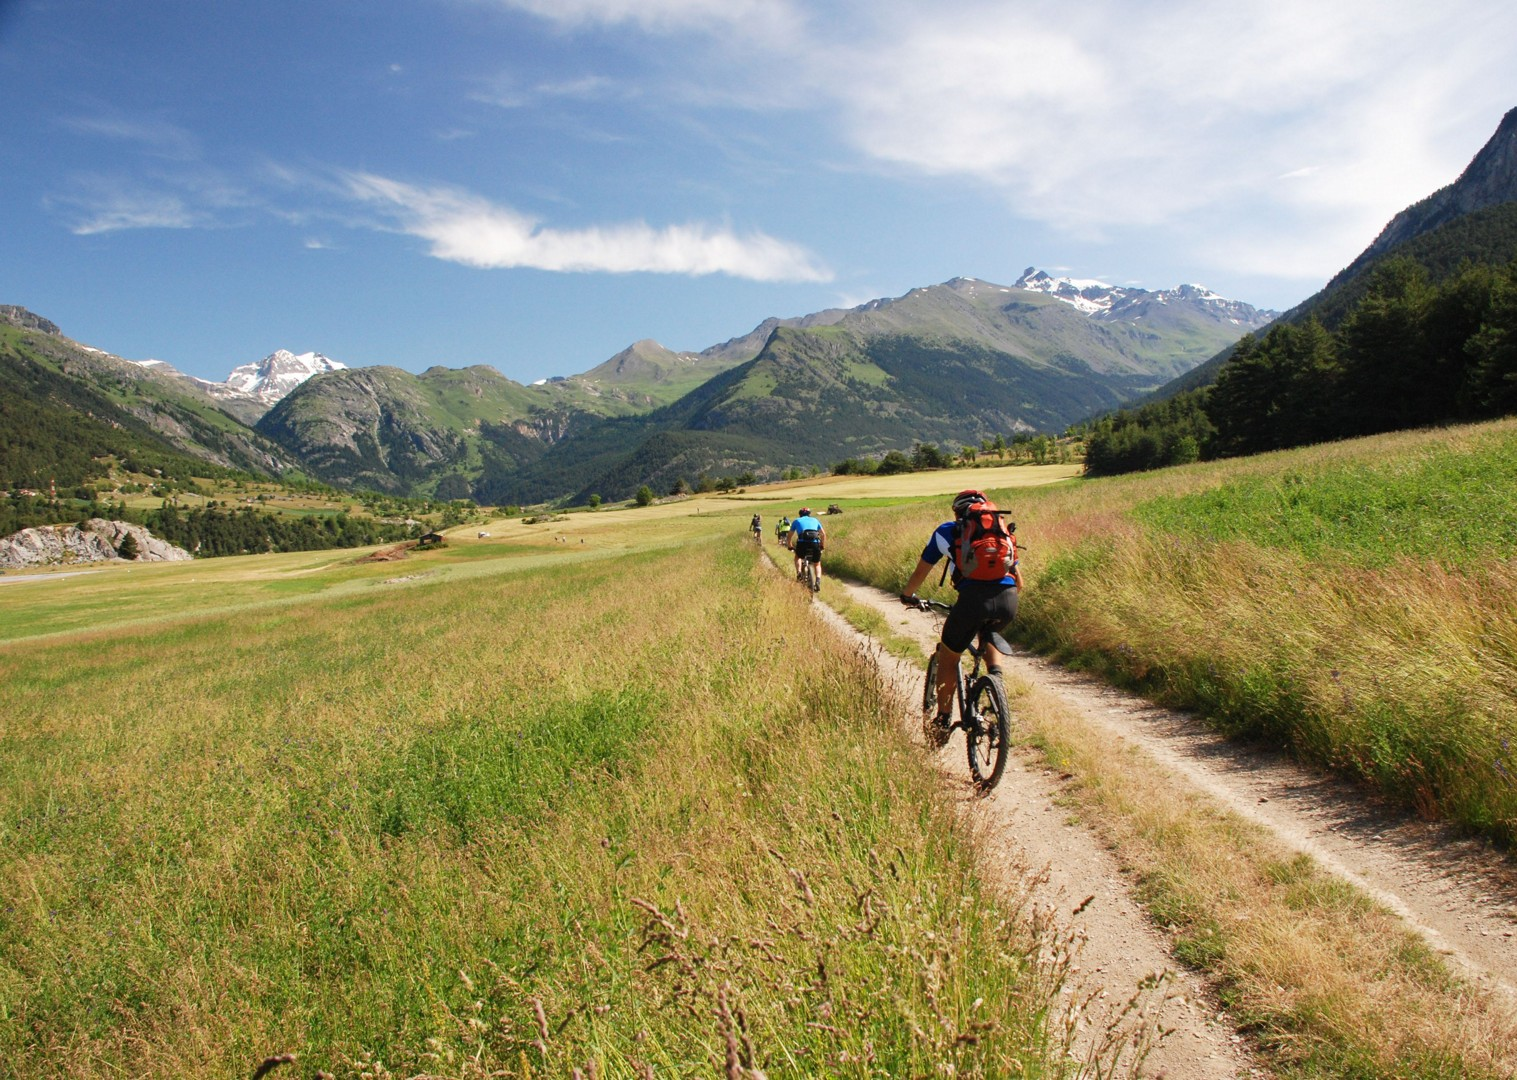 singletrack-mountain-bike-holiday-in-the-alps-alpine-adventure.JPG - Italy and France - Alpine Adventure - Mountain Biking